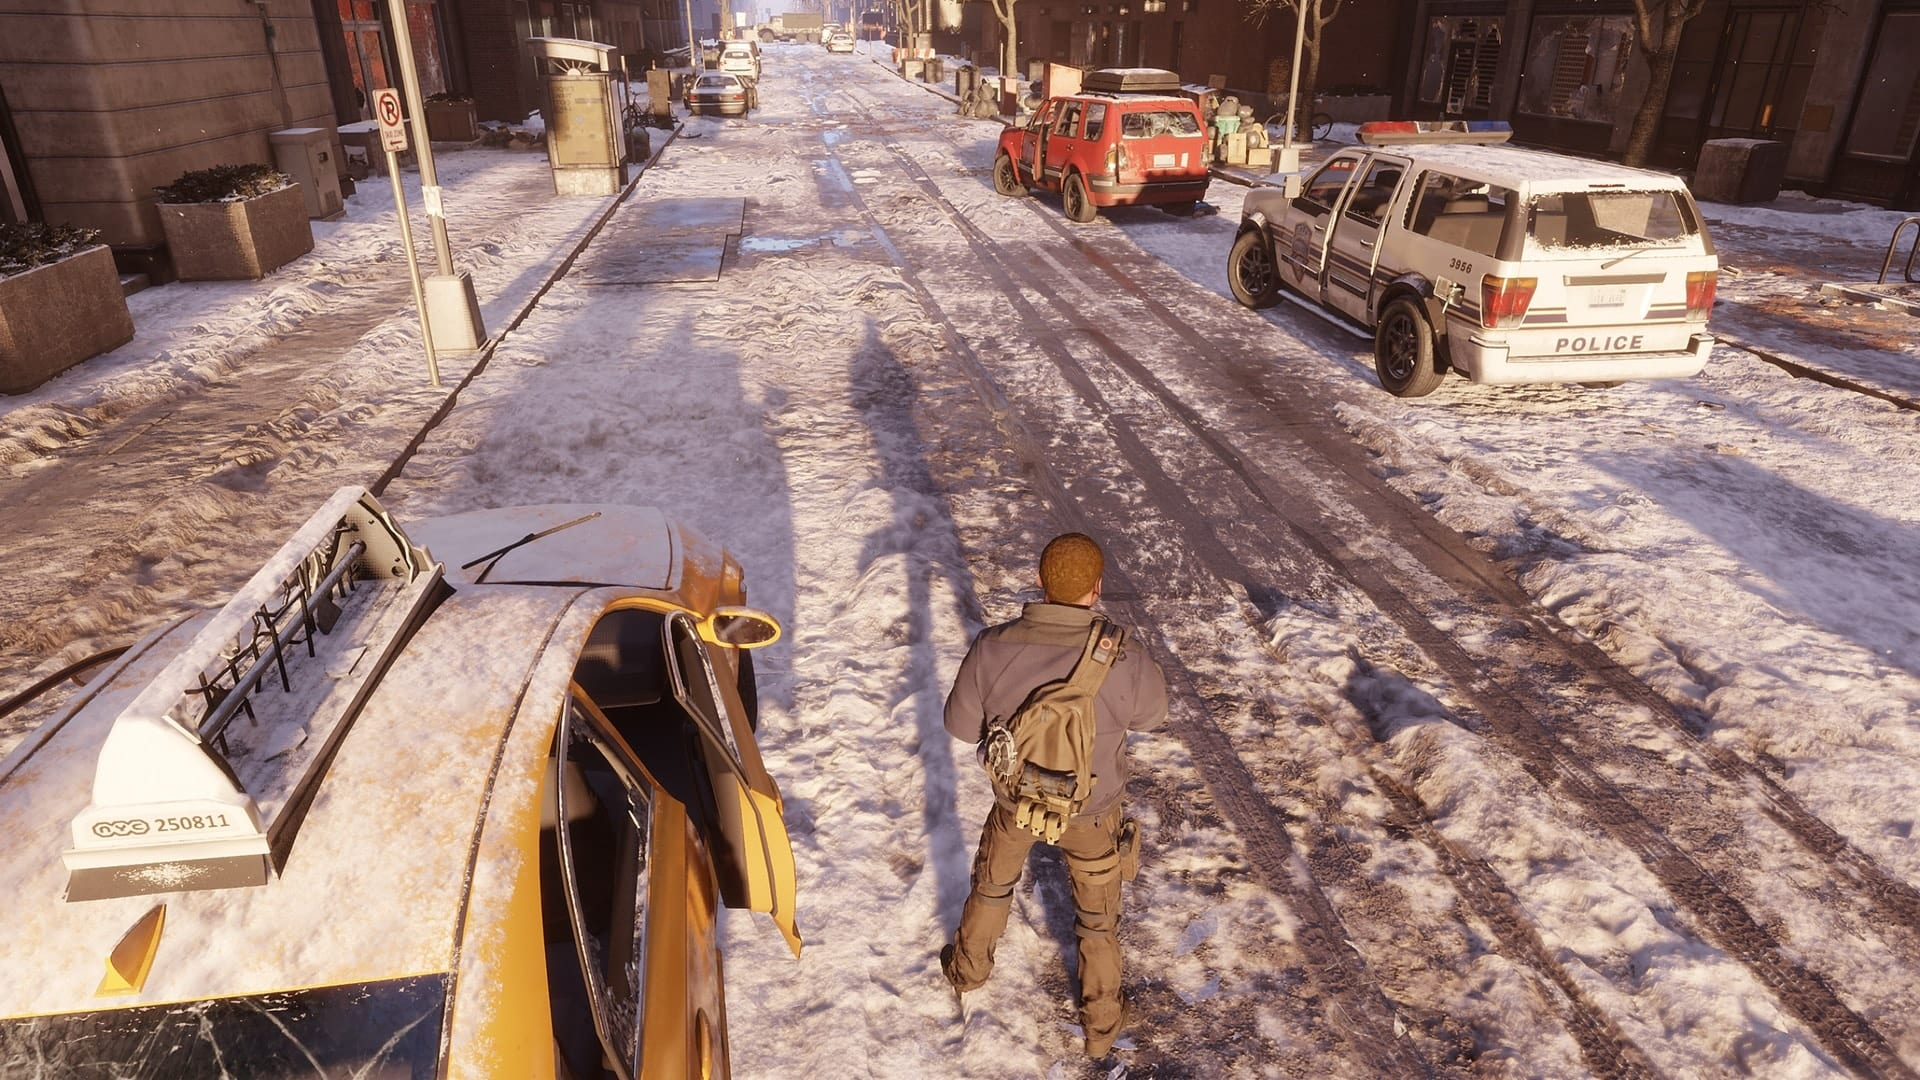 pc gaming.it tom clancys the division recensione 12 - Tom Clancy's The Division - Recensione